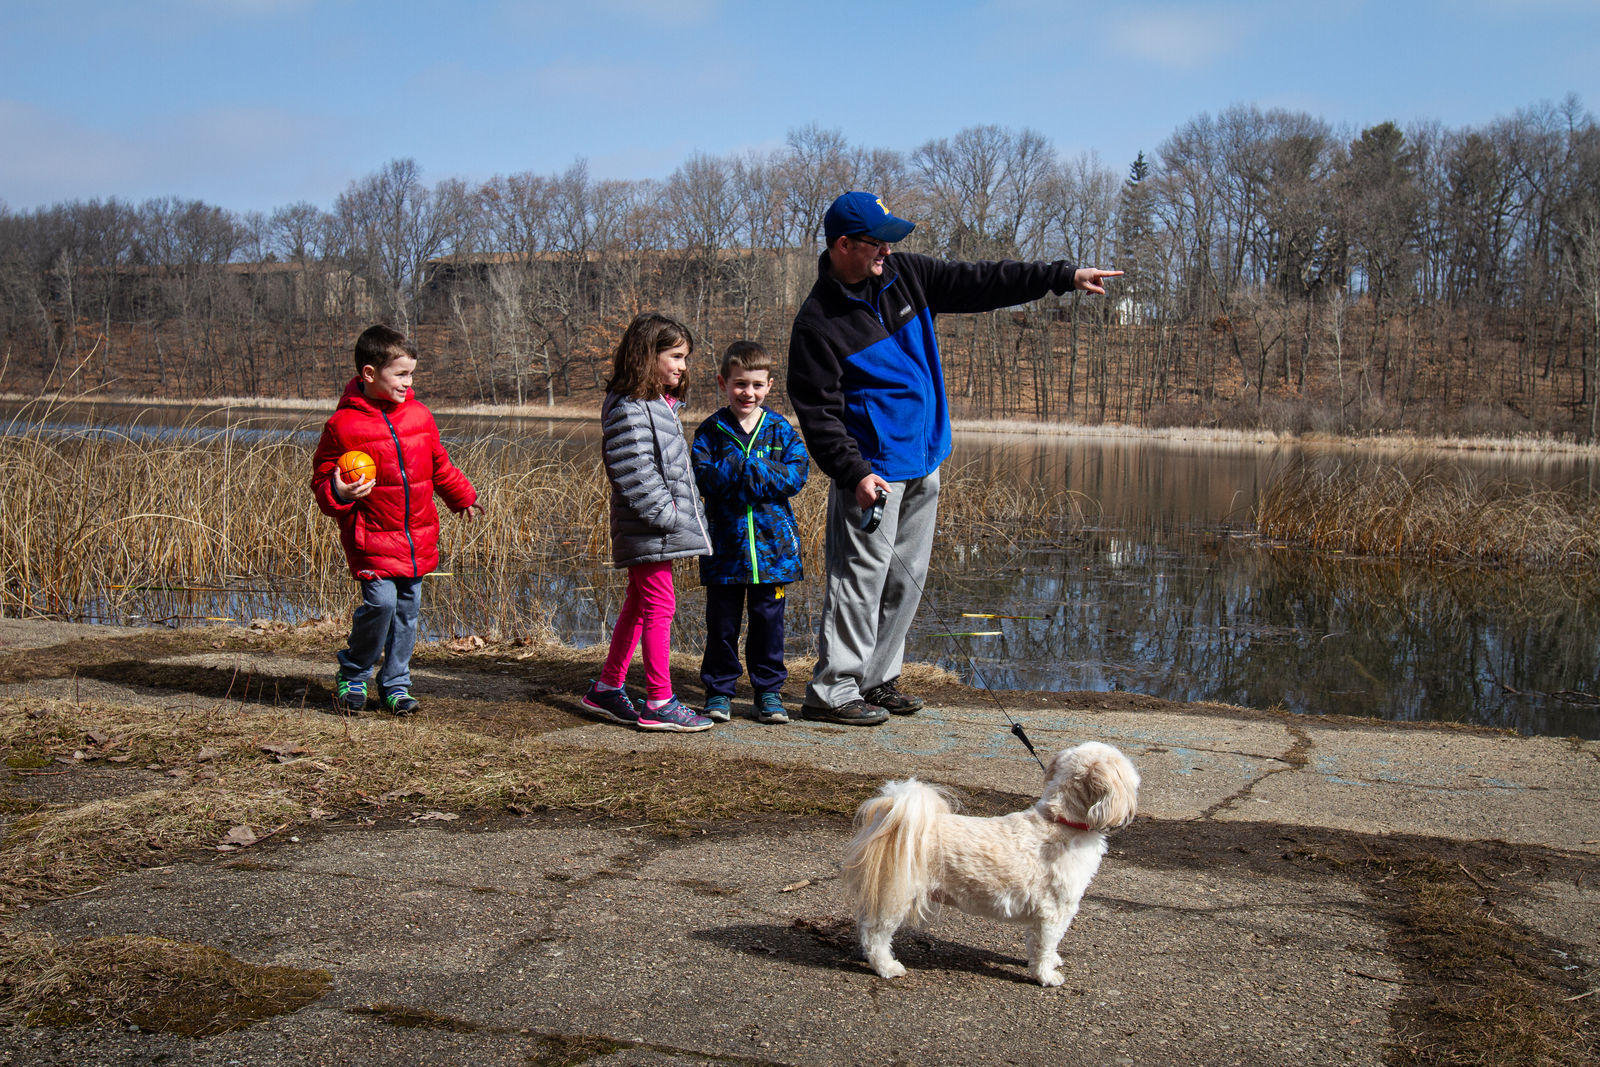 The Williams family from Lawton, Michigan watches birds at Asylum Lake Preserve on Wednesday, March 25.{ }(WWMT/Sarah White)